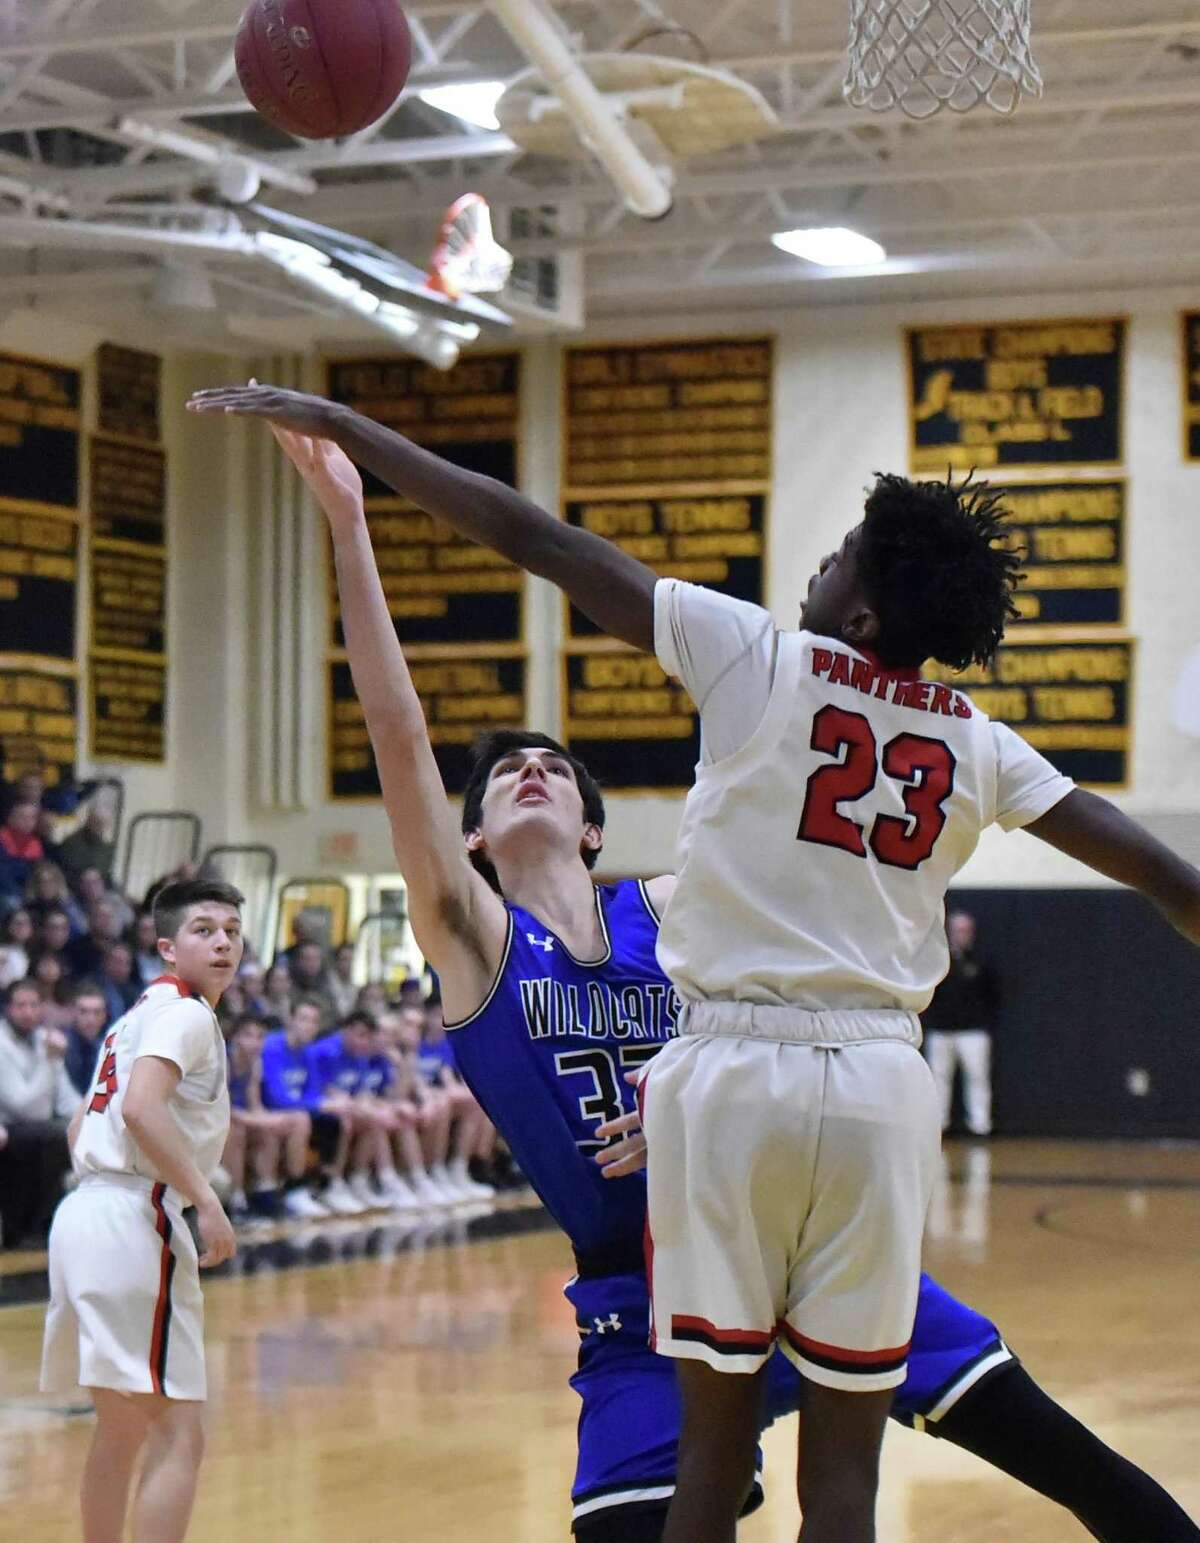 Madison, Connecticut - Friday, March 1, 2019: Old Lyme H.S. vs. Cromwell H.S. during the Shoreline Conference boys basketball championship game Friday night at Polson Middle School in Madison.